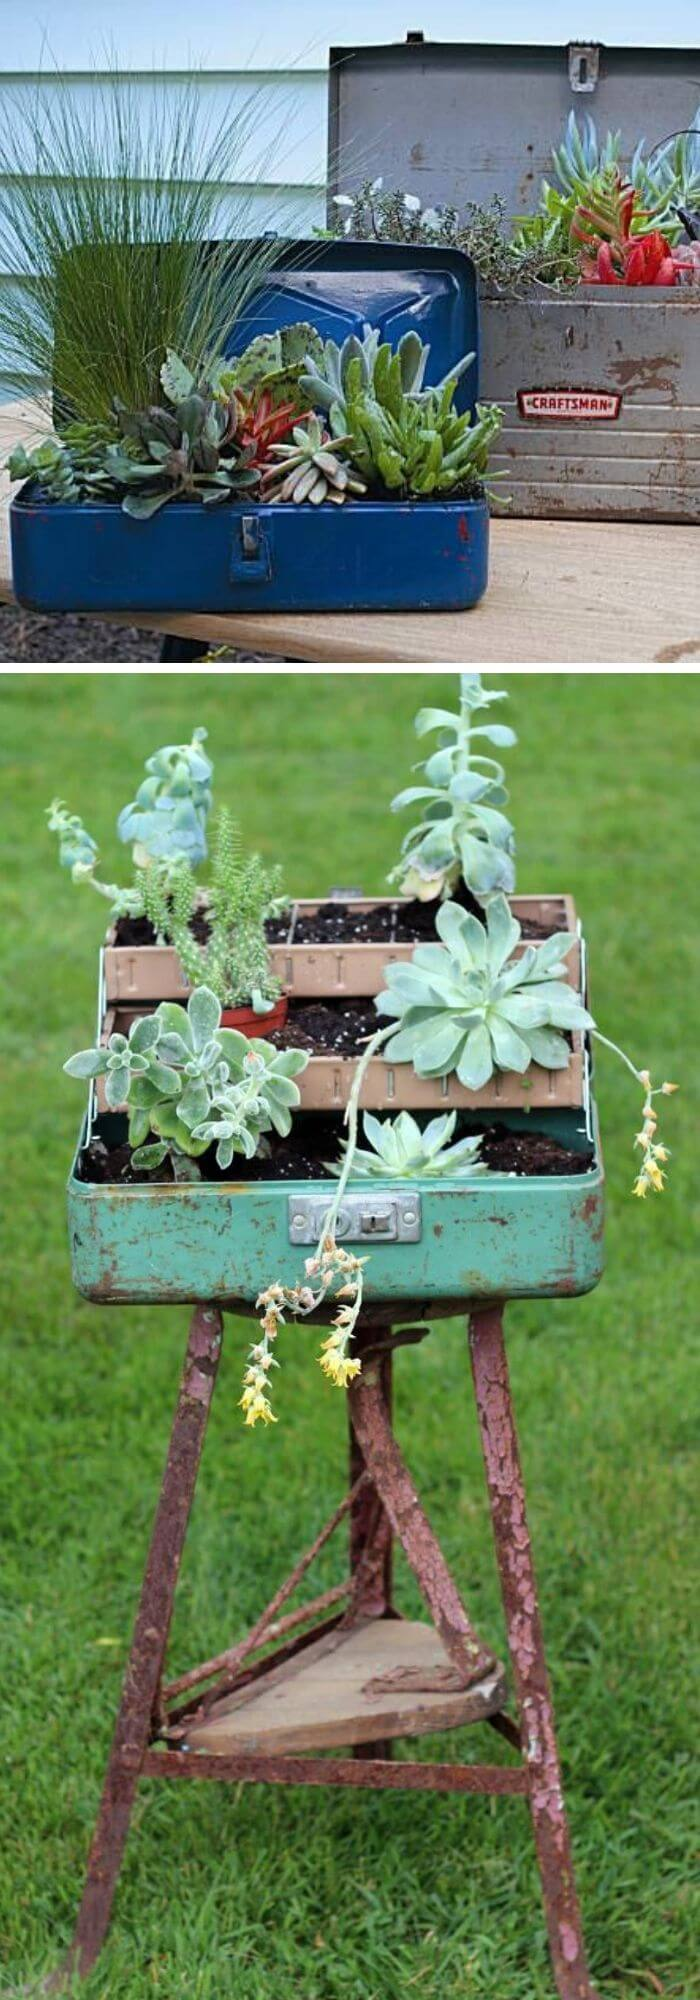 Old Fishing Tackle Box Succulent